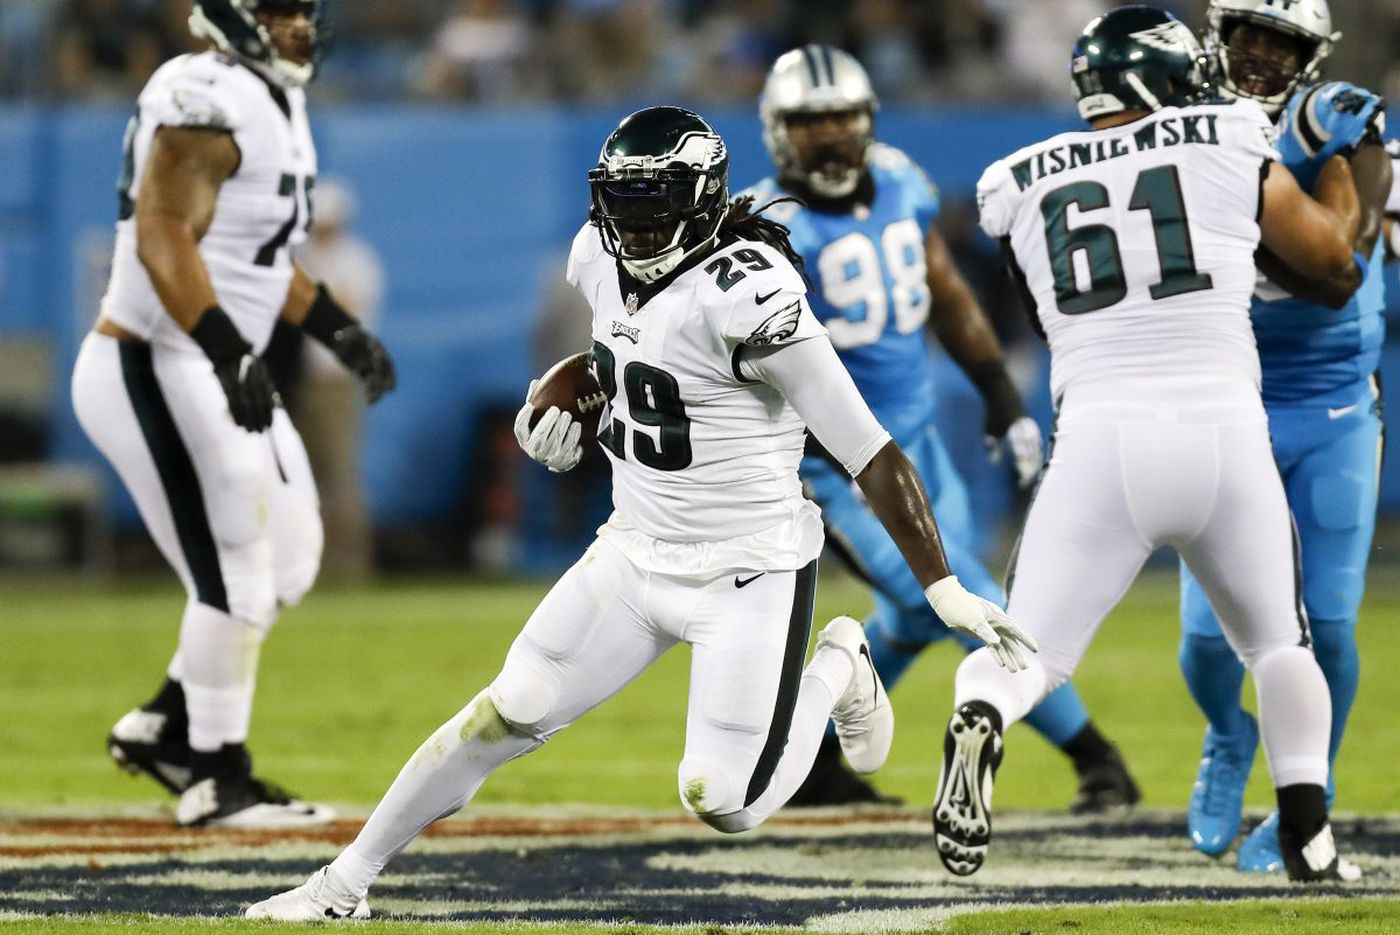 What did we learn from the Eagles' big win over the Panthers?